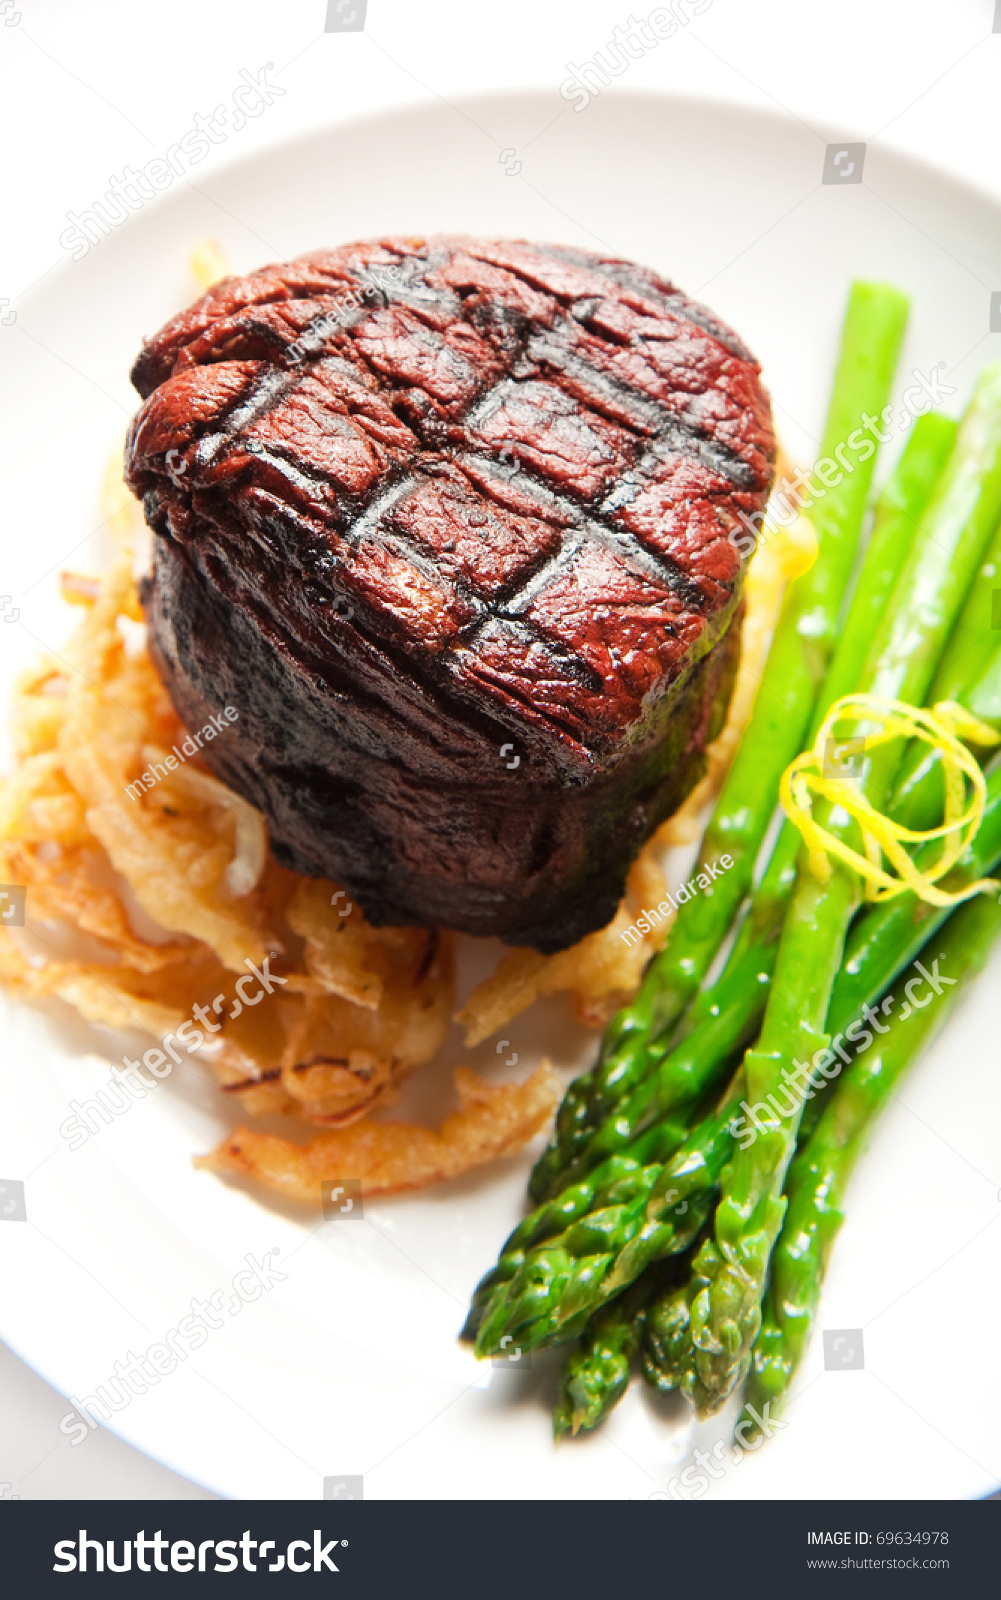 Thick Filet Mignon Served With Crispy Onions And Asparagus Stock Photo 69634978 : Shutterstock